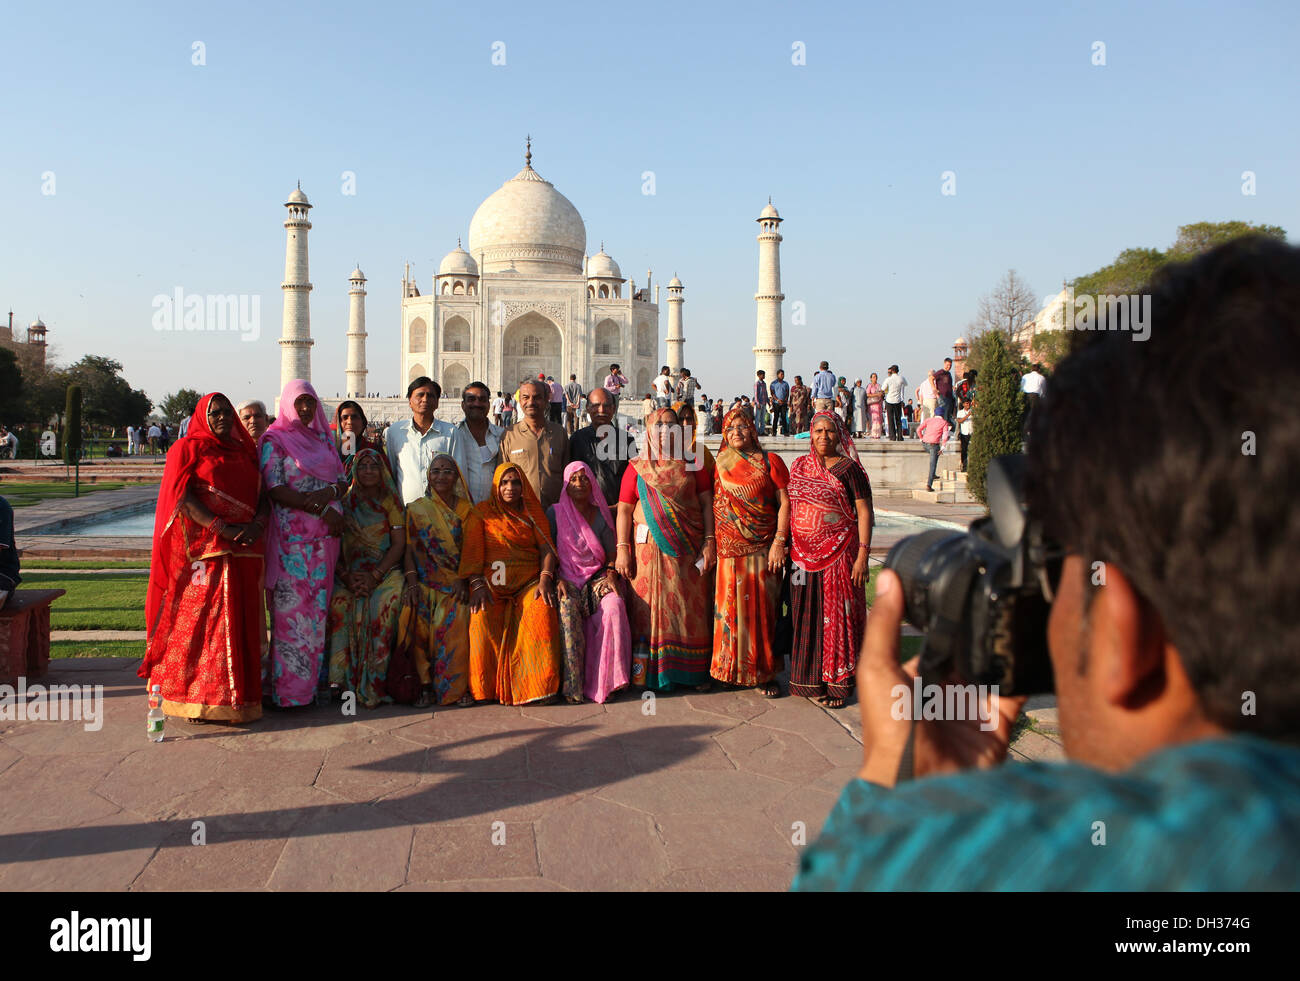 Indian tourists pose for a photo in front of the Taj Mahal, Agra, Uttar Pradesh, India, Asia - Stock Image